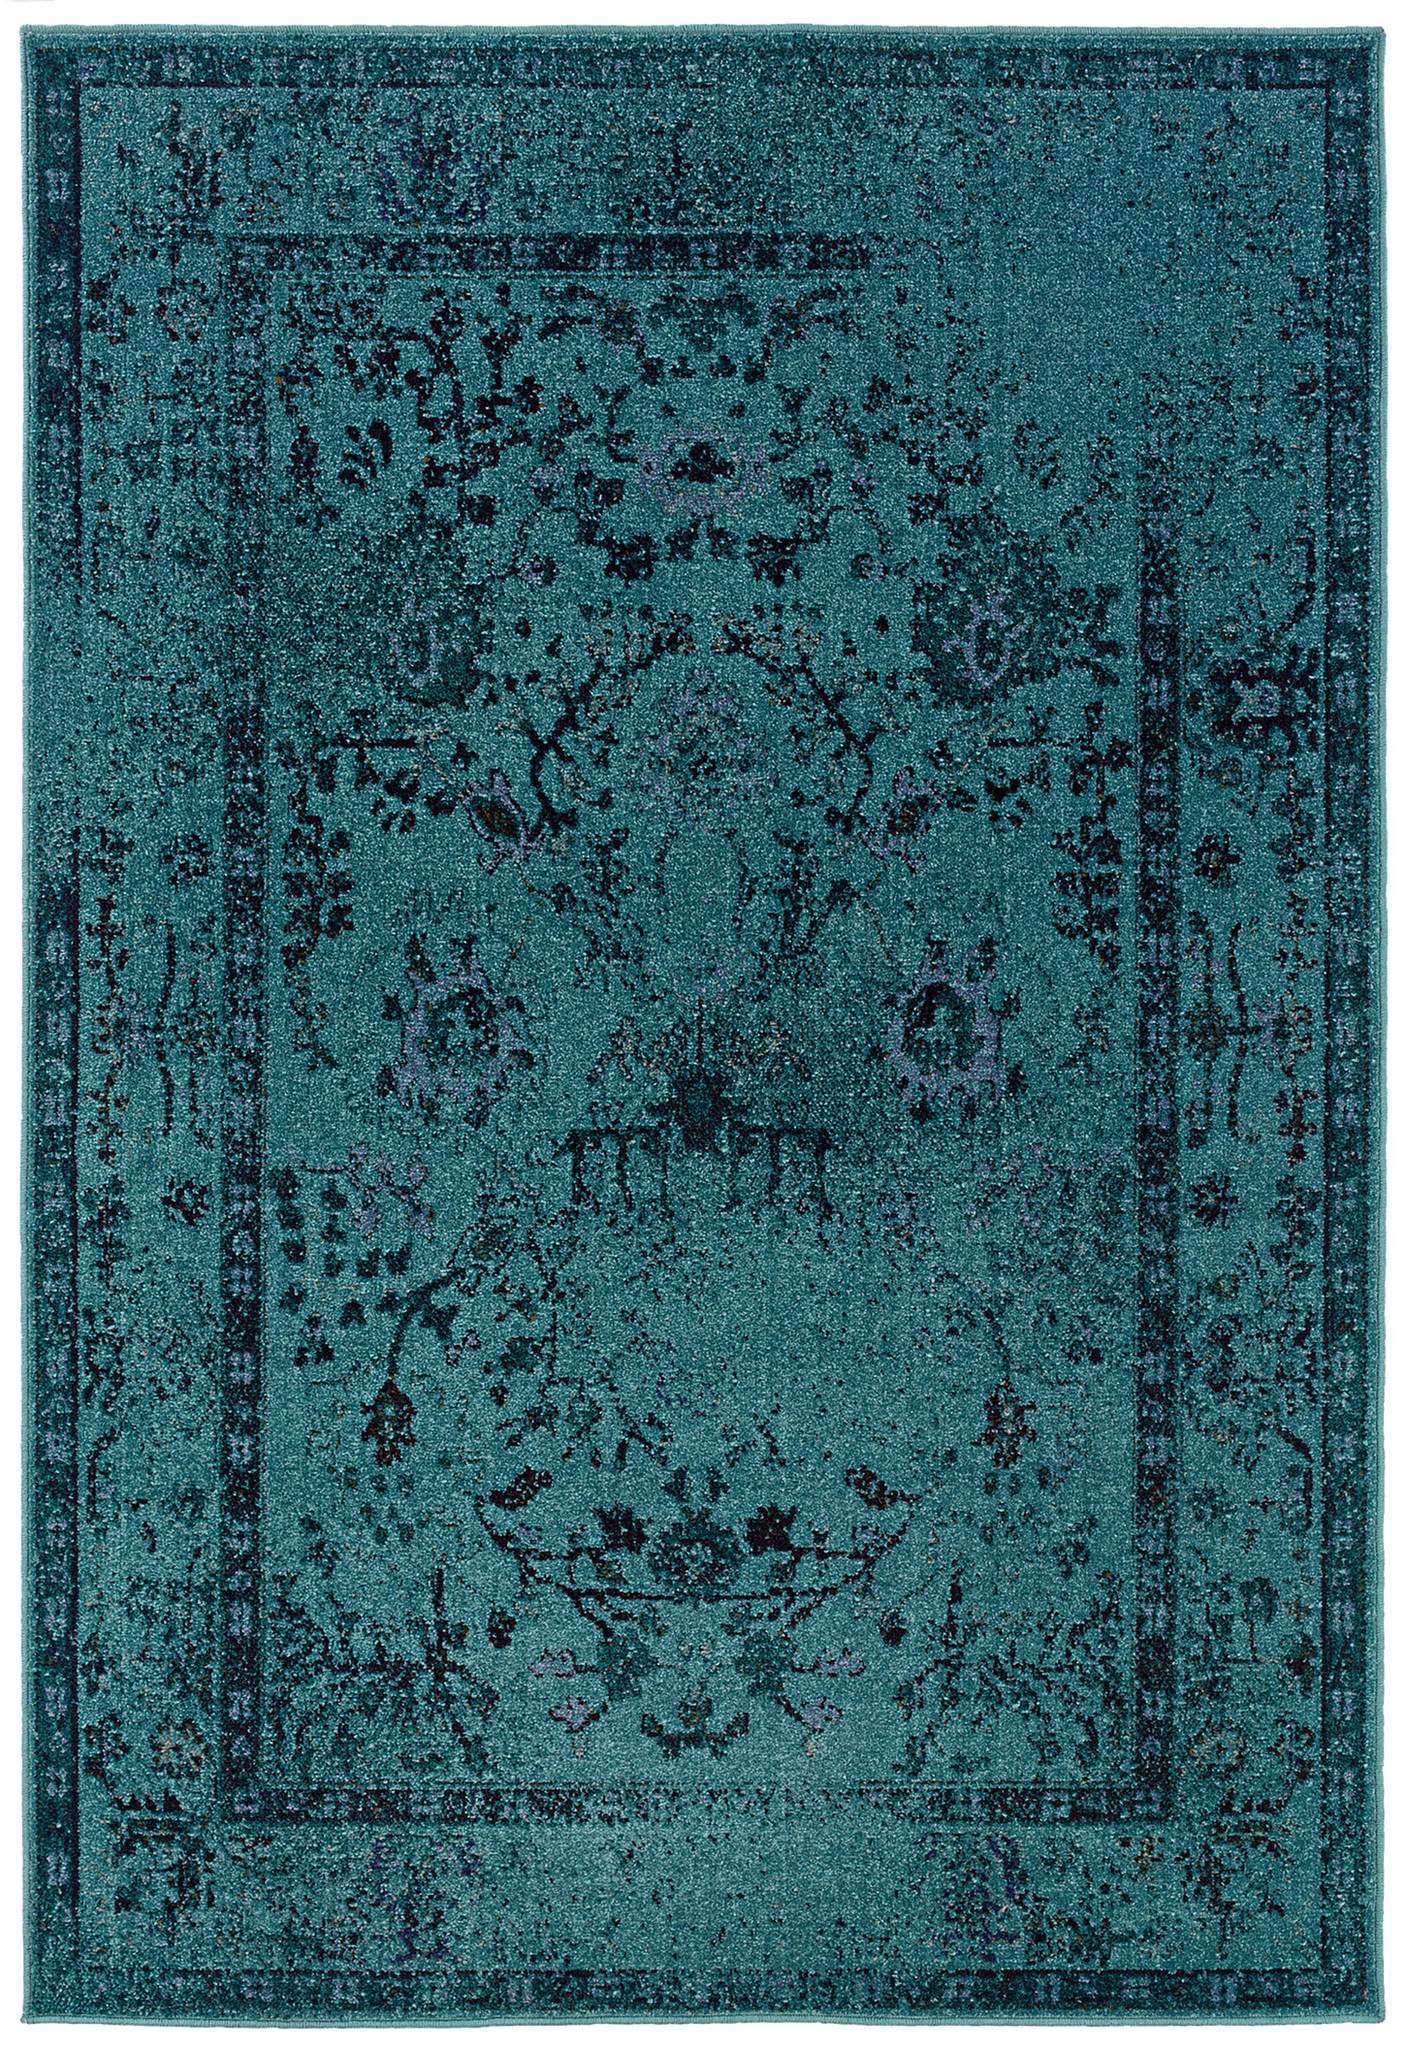 Teal Color Area Rugs Teal Blue Overdyed Style Area Rug